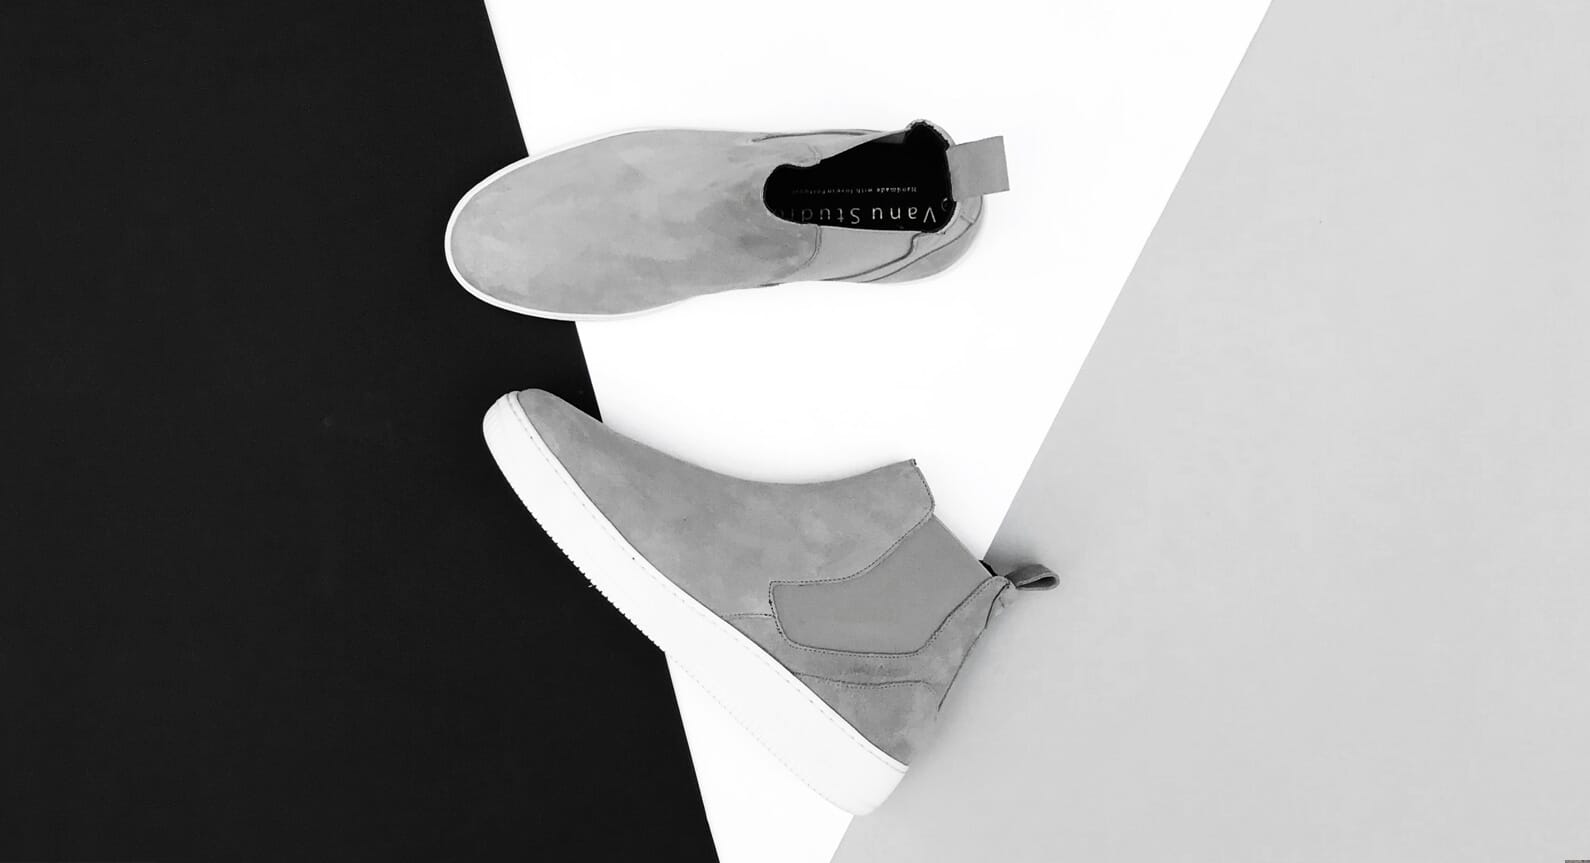 Vanu Studio: The Dutch Brand Redefining The Chelsea Boot